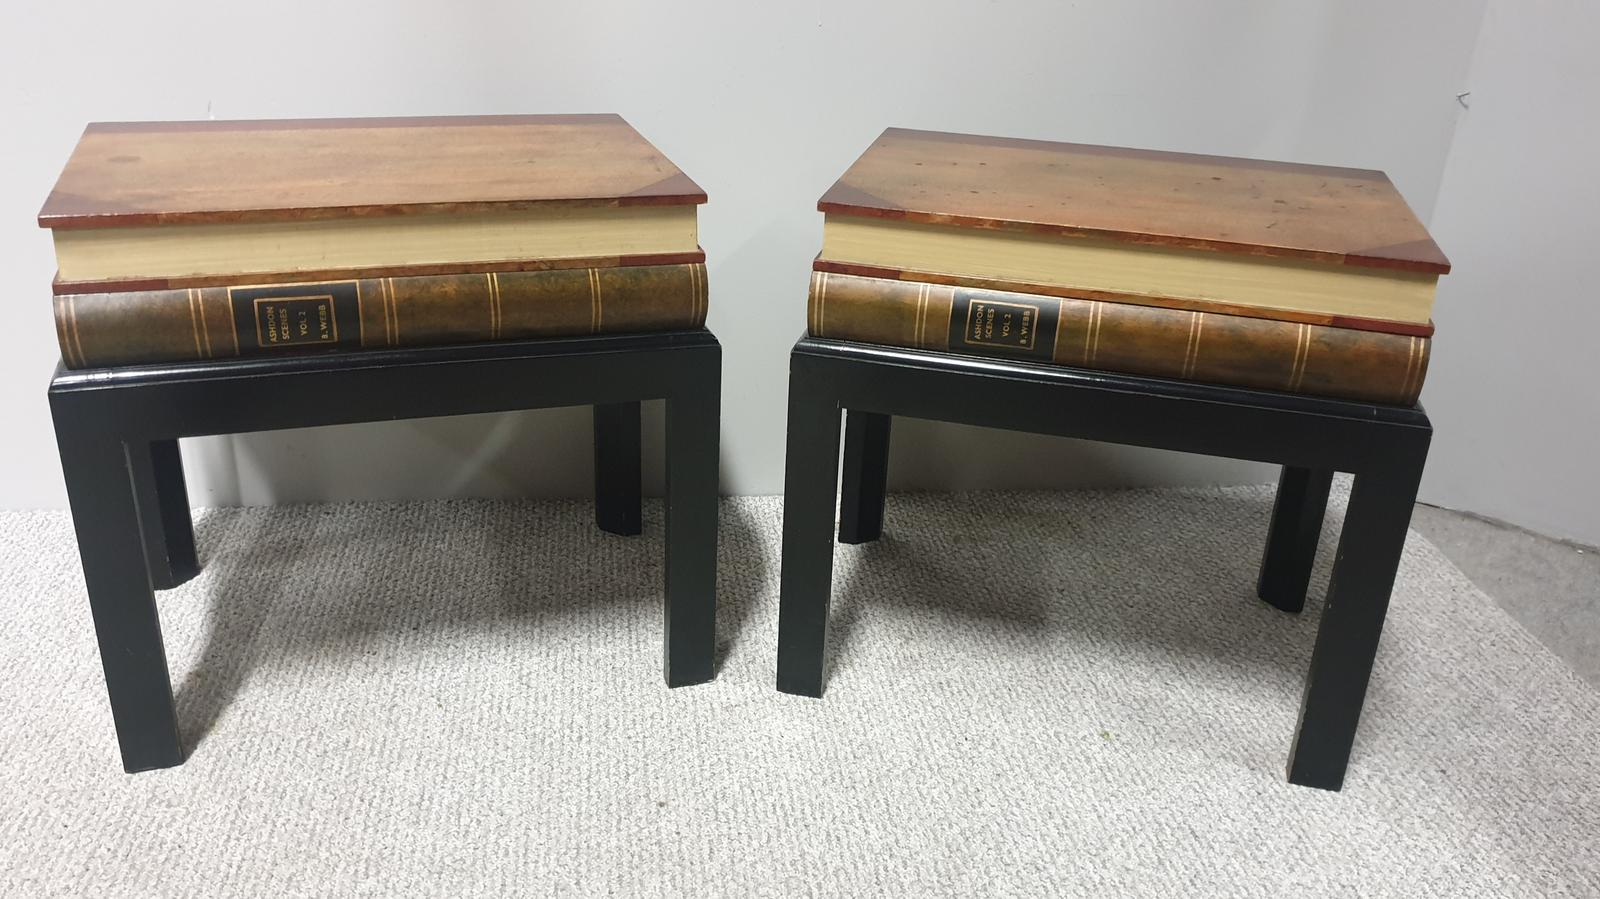 Pair of Bedside Lamp Tables (1 of 1)